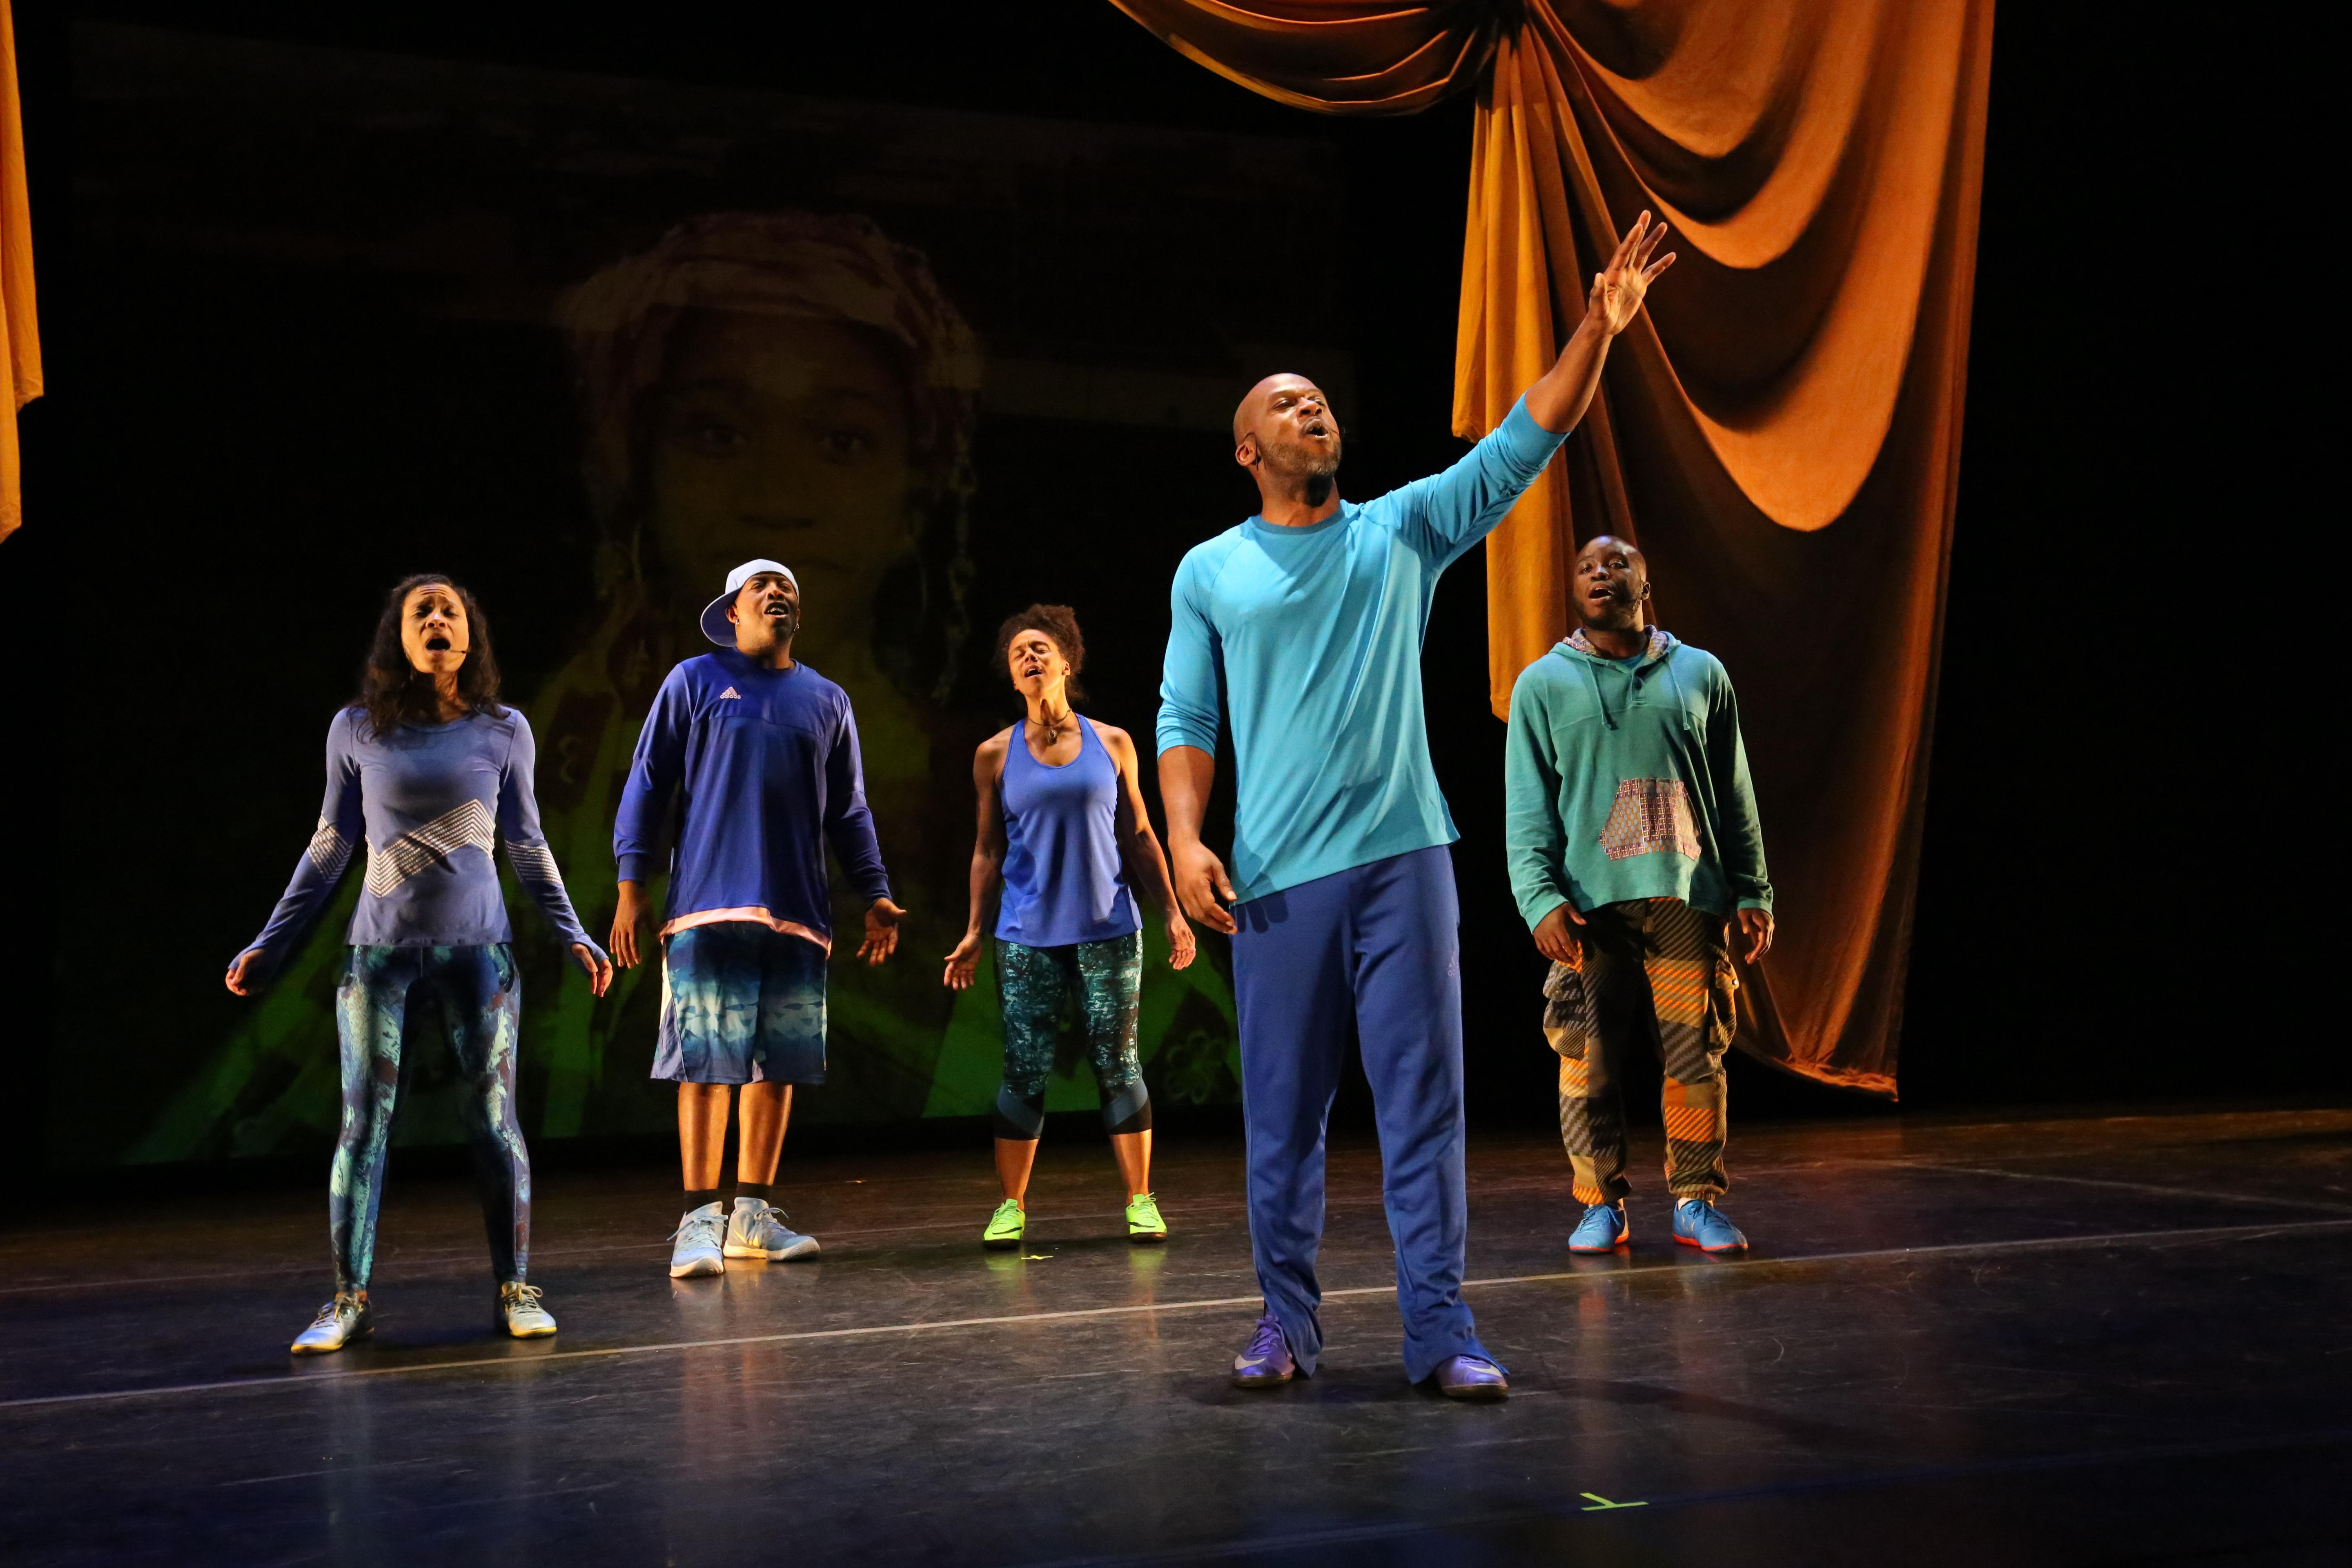 Five performers stand on a stage heads upraised and mouths open. They are dressed in athletic shoes and clothes in shades of blue. In the background, an elaborate umber drapery frames a faintly projected image of a young girl.